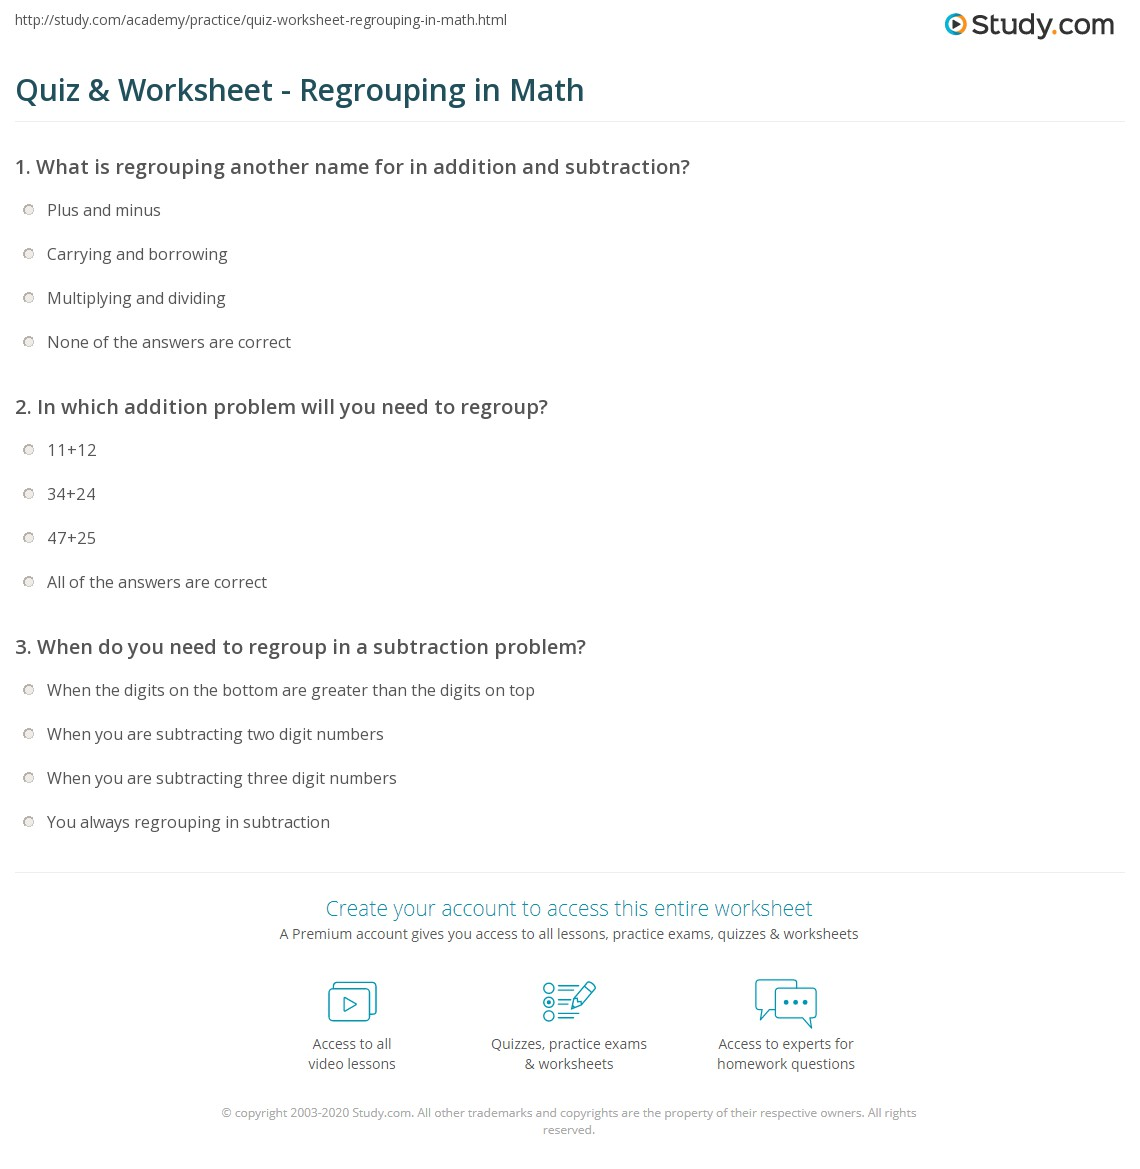 quiz & worksheet - regrouping in math | study